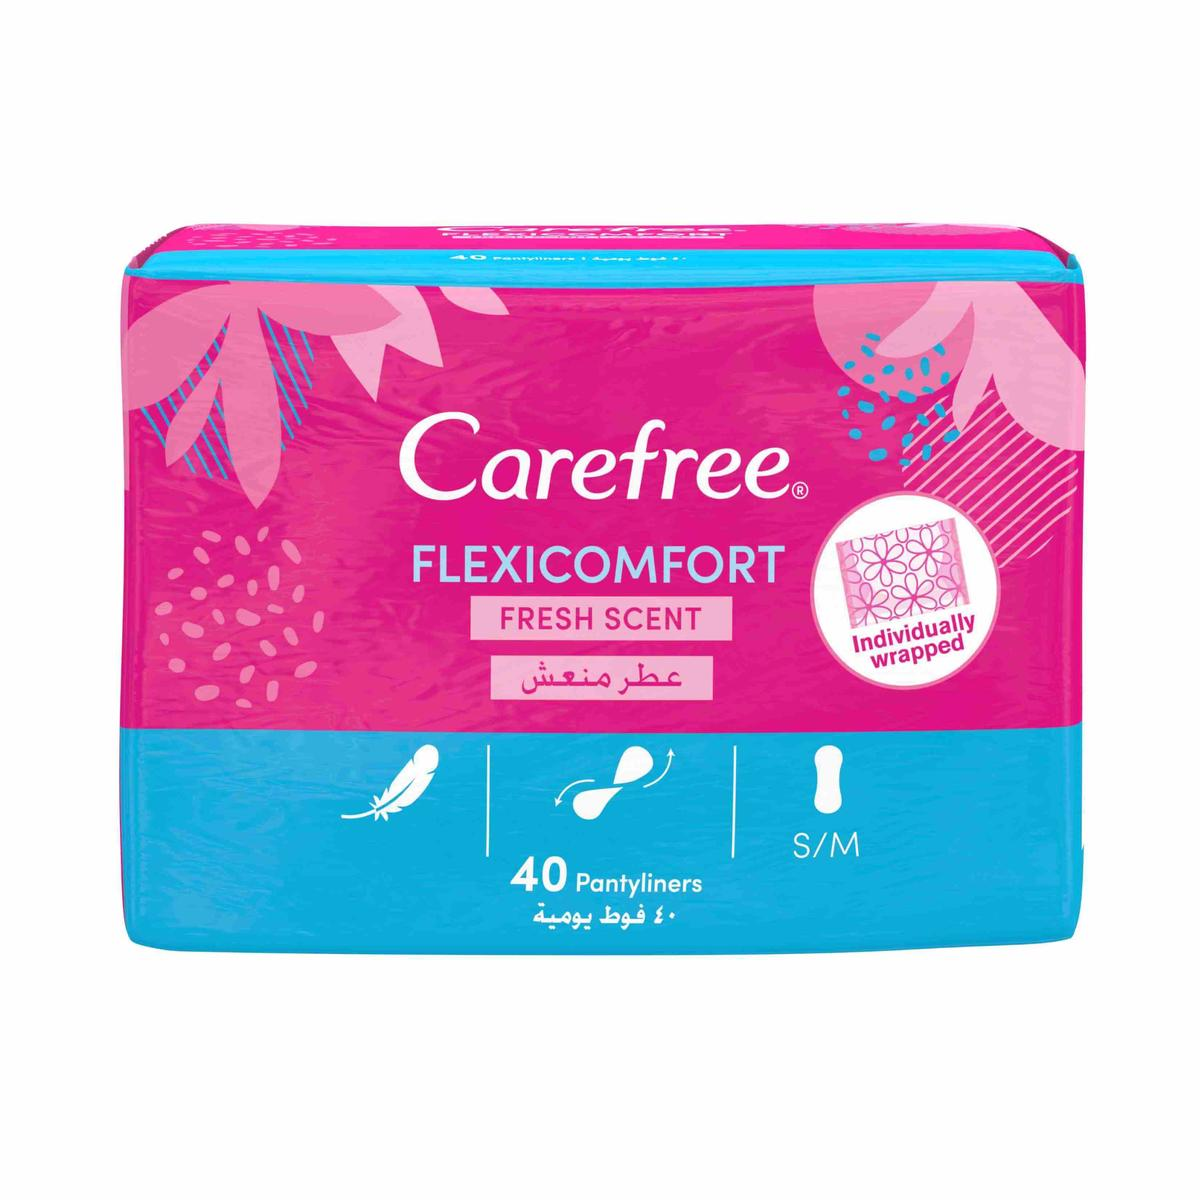 Carefree Flexicomfort Panty Liners With Fresh Scent 40-Pack